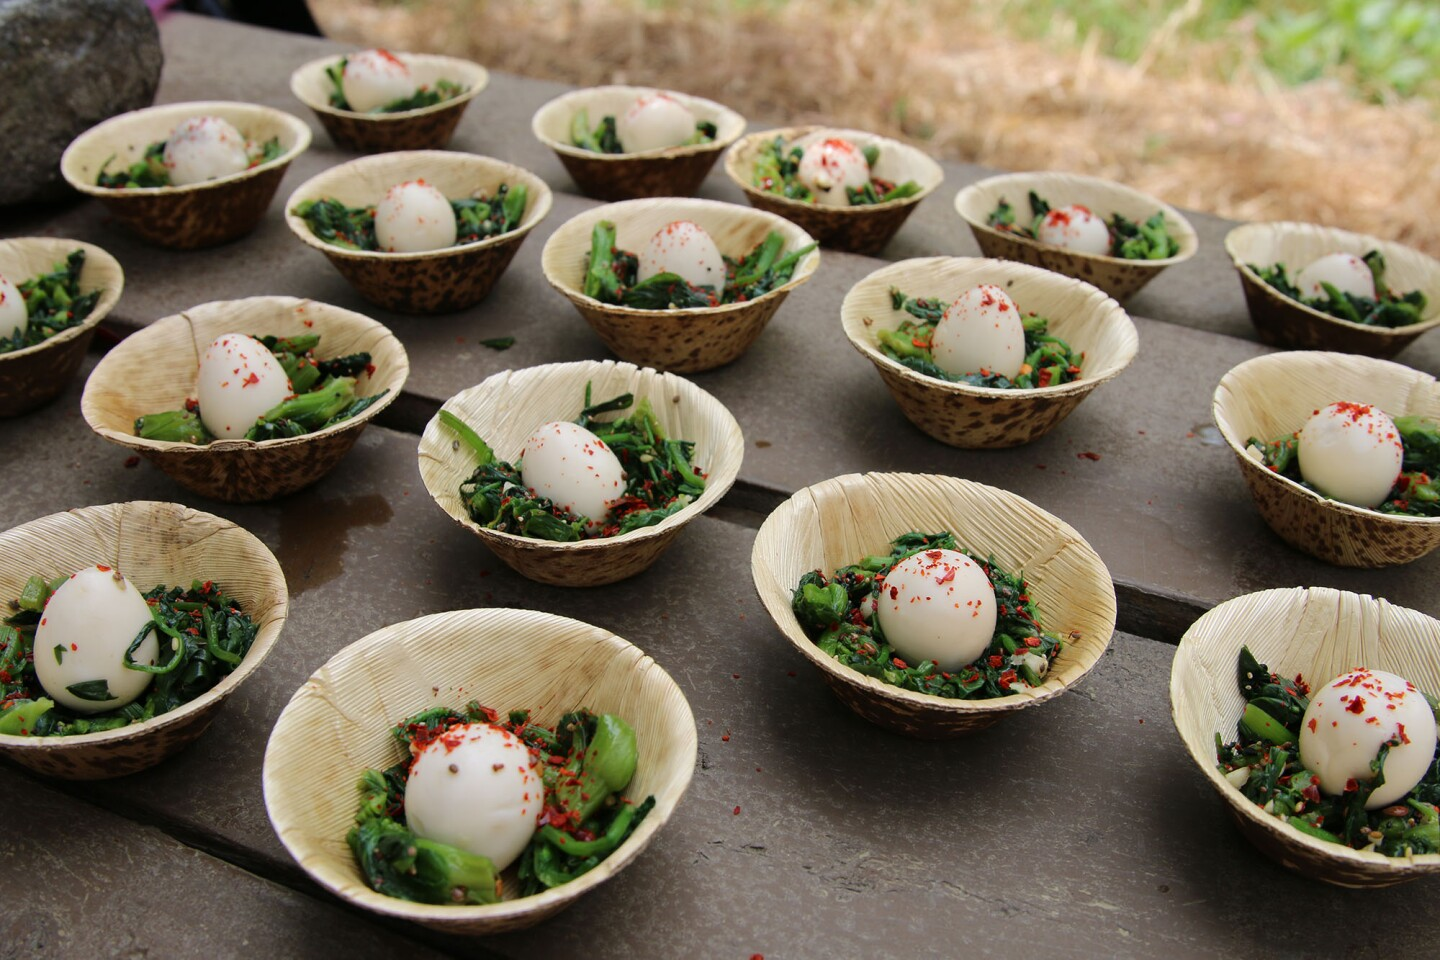 Baudar's quail eggs on top of wild greens I Camille Frazier